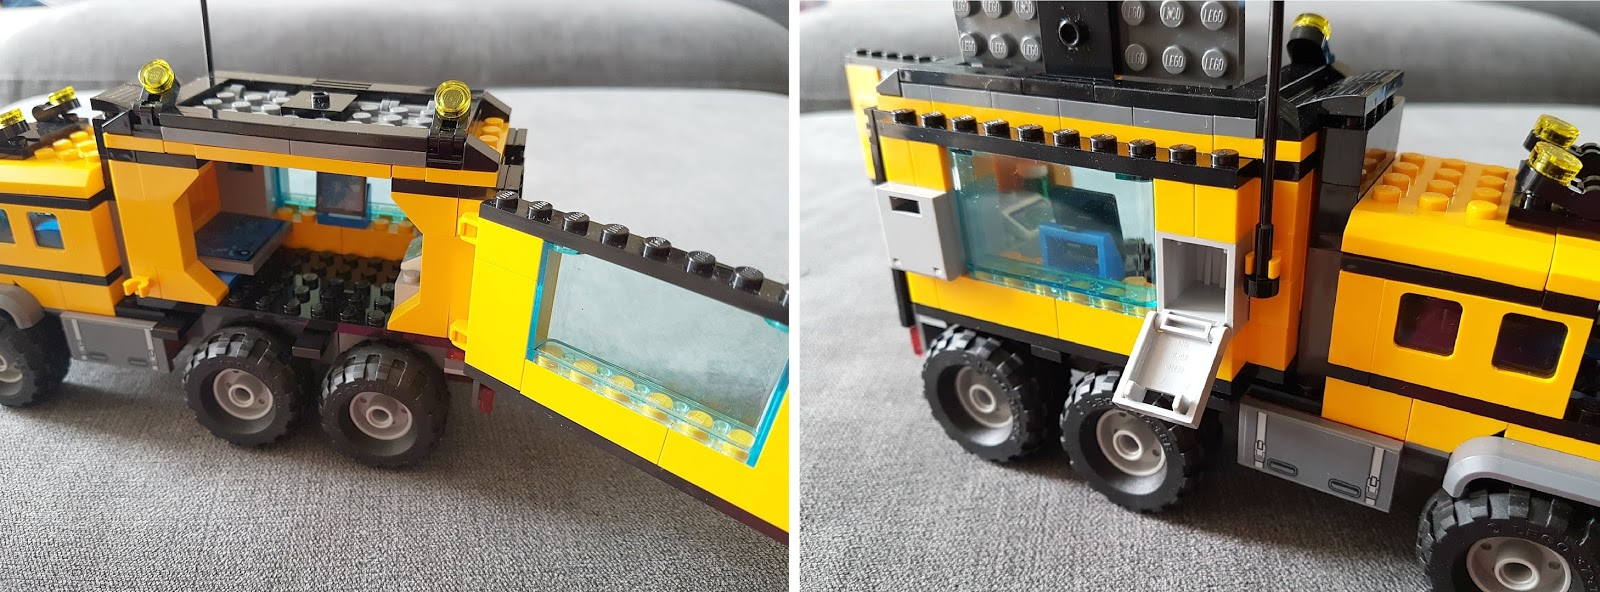 LEGO City Jungle, National Geographic Kids, LEGO City Jungle Mobile Lab